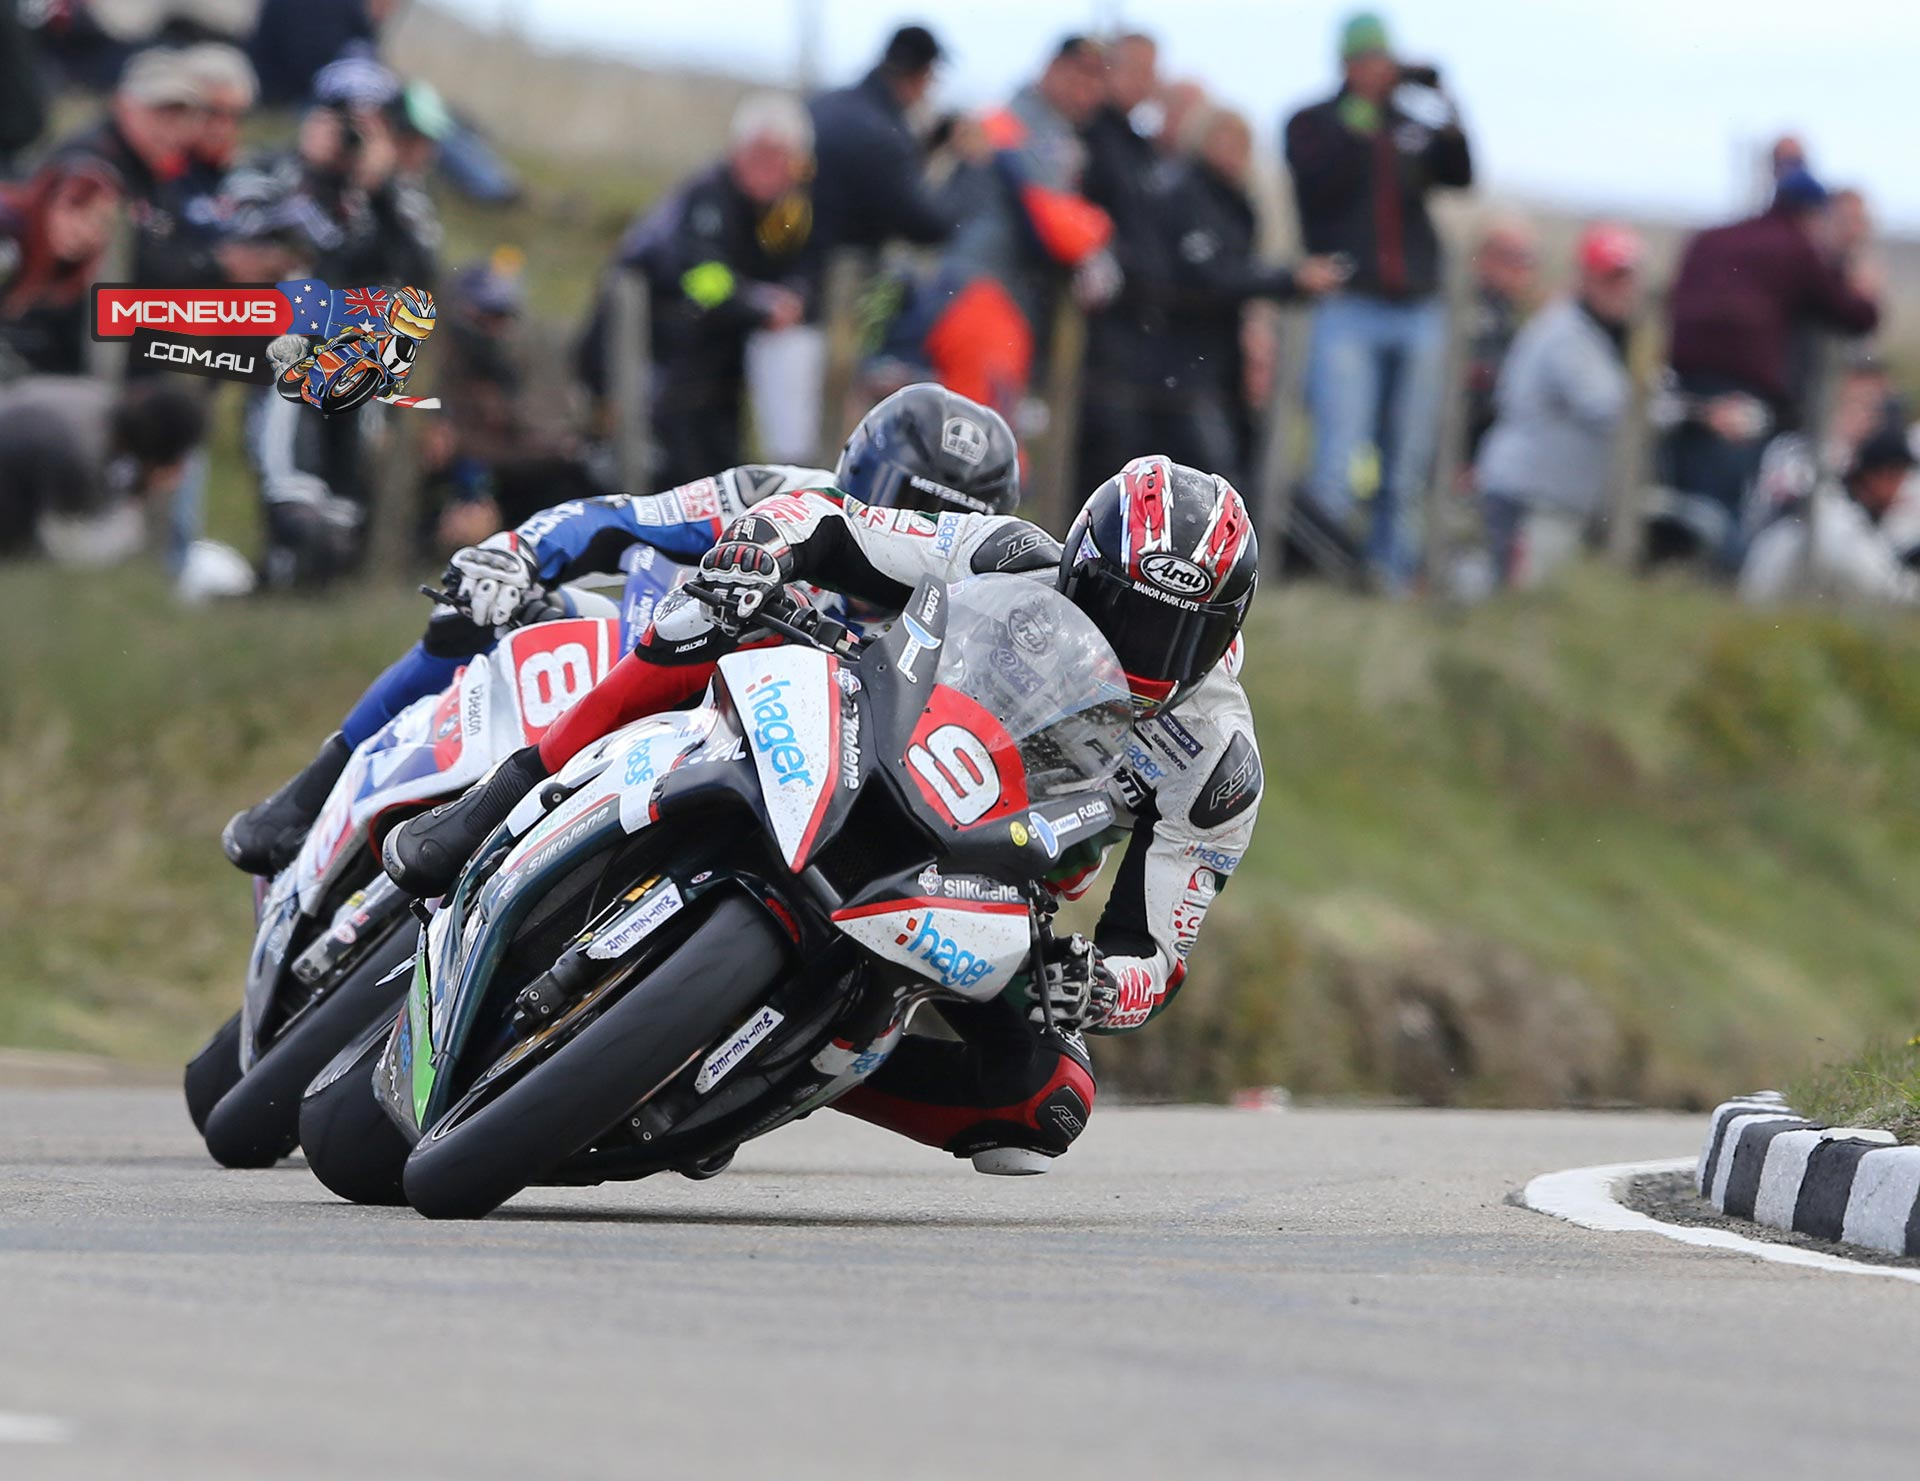 Isle of Man TT 2015 - RL360 Superstock TT - Ian Hutchinson and Guy Martin